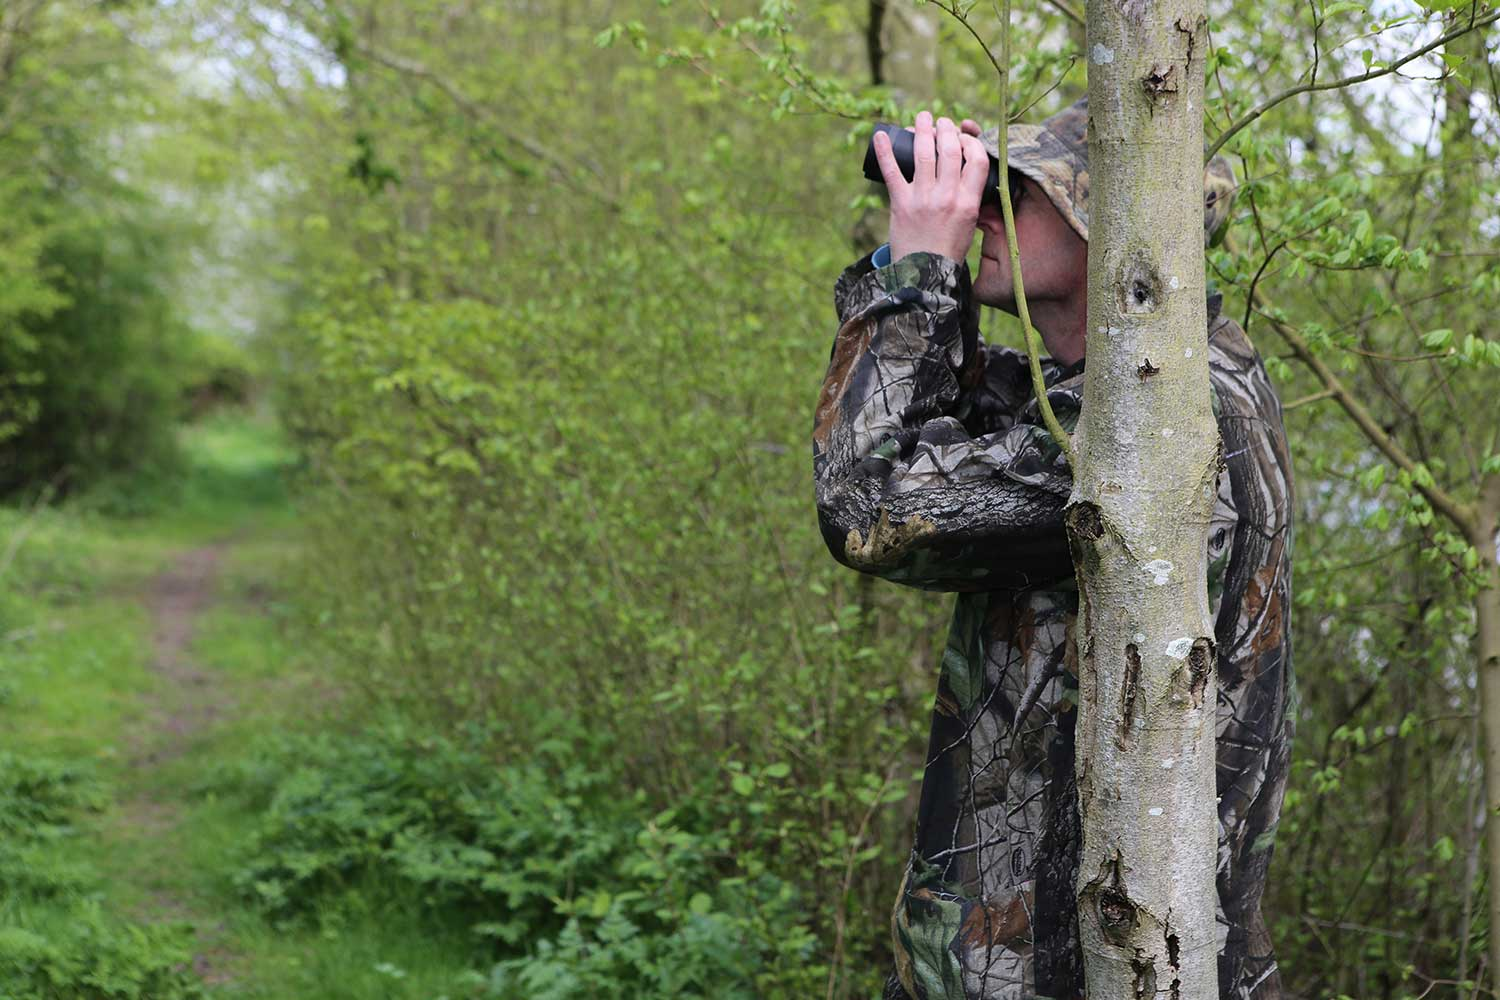 Bird Watching on Pete's Airgun Farm in Essex